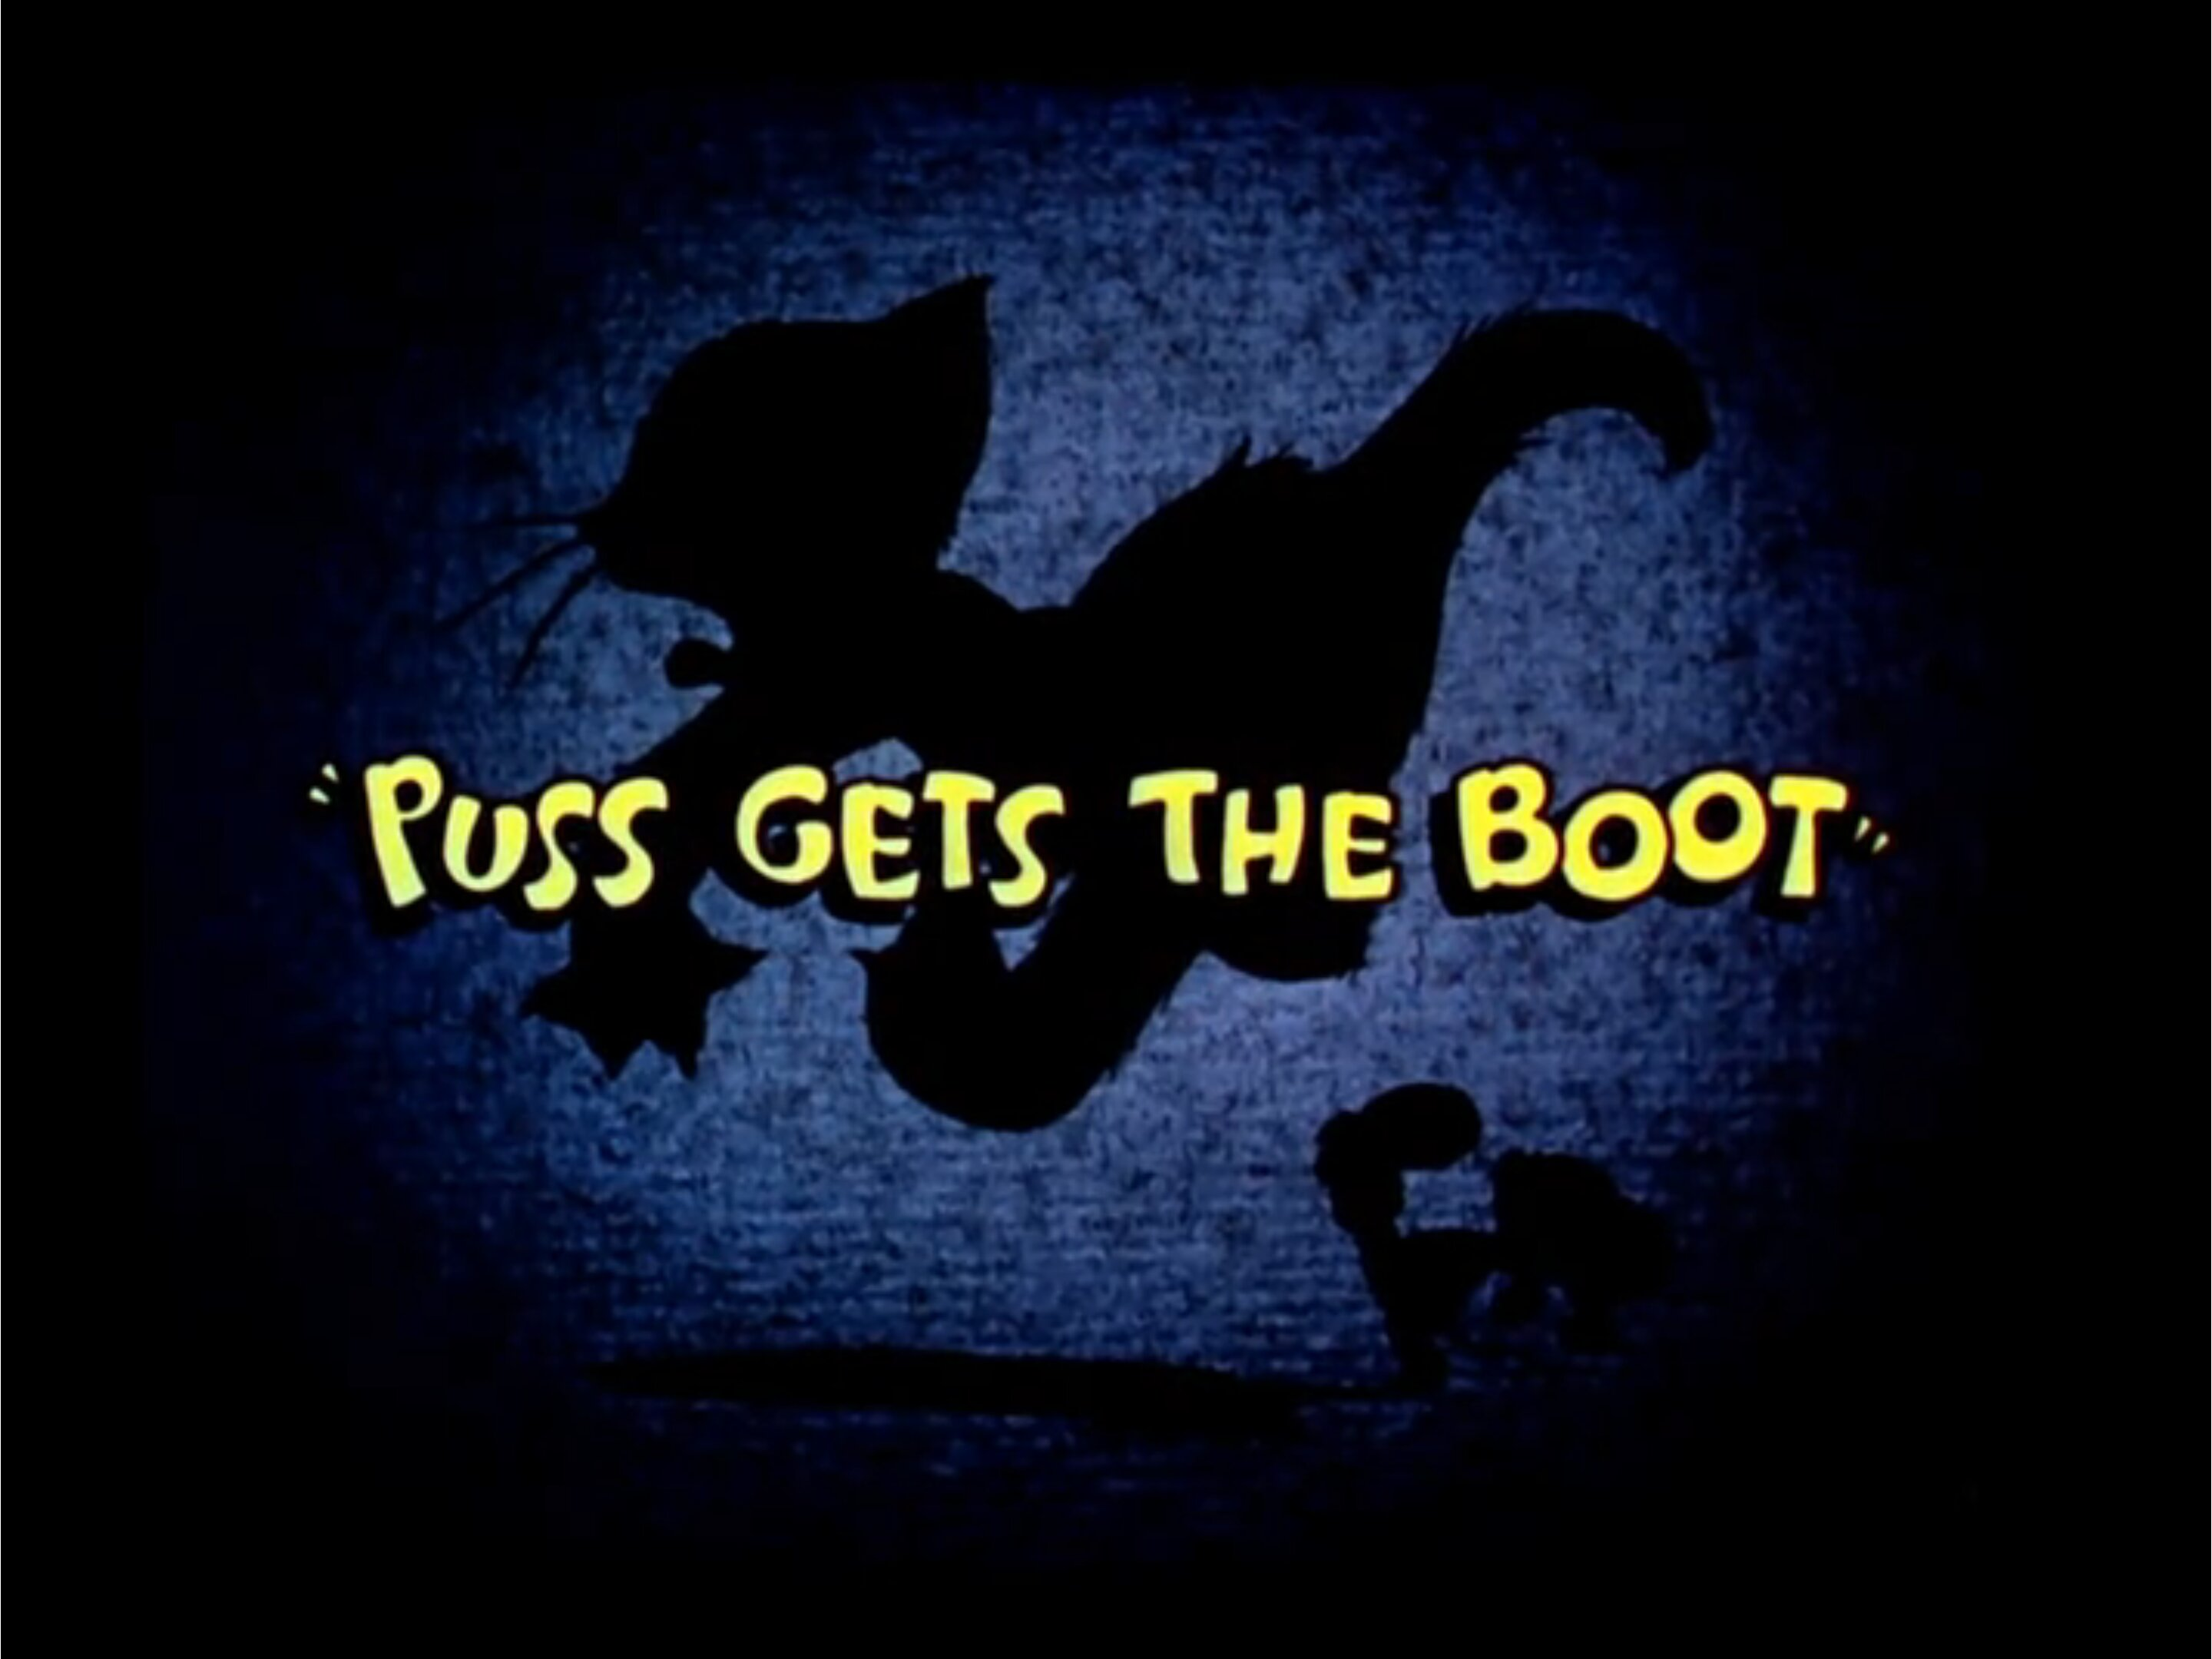 Puss Gets the Boot | Tom and Jerry Wiki | FANDOM powered by Wikia